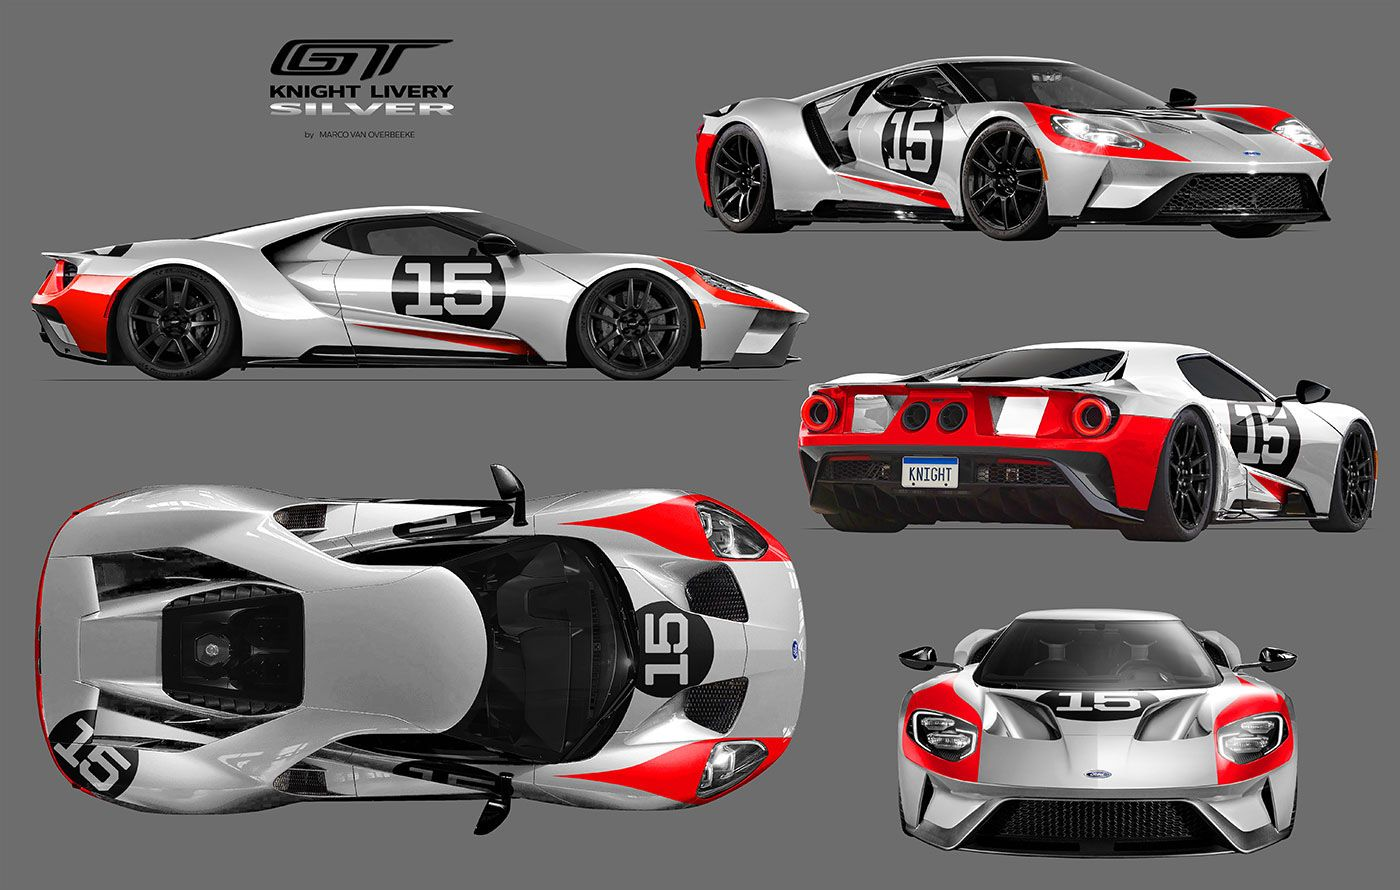 2017 Ford Gt Custom Liveries Knight Livery With Images Ford Gt